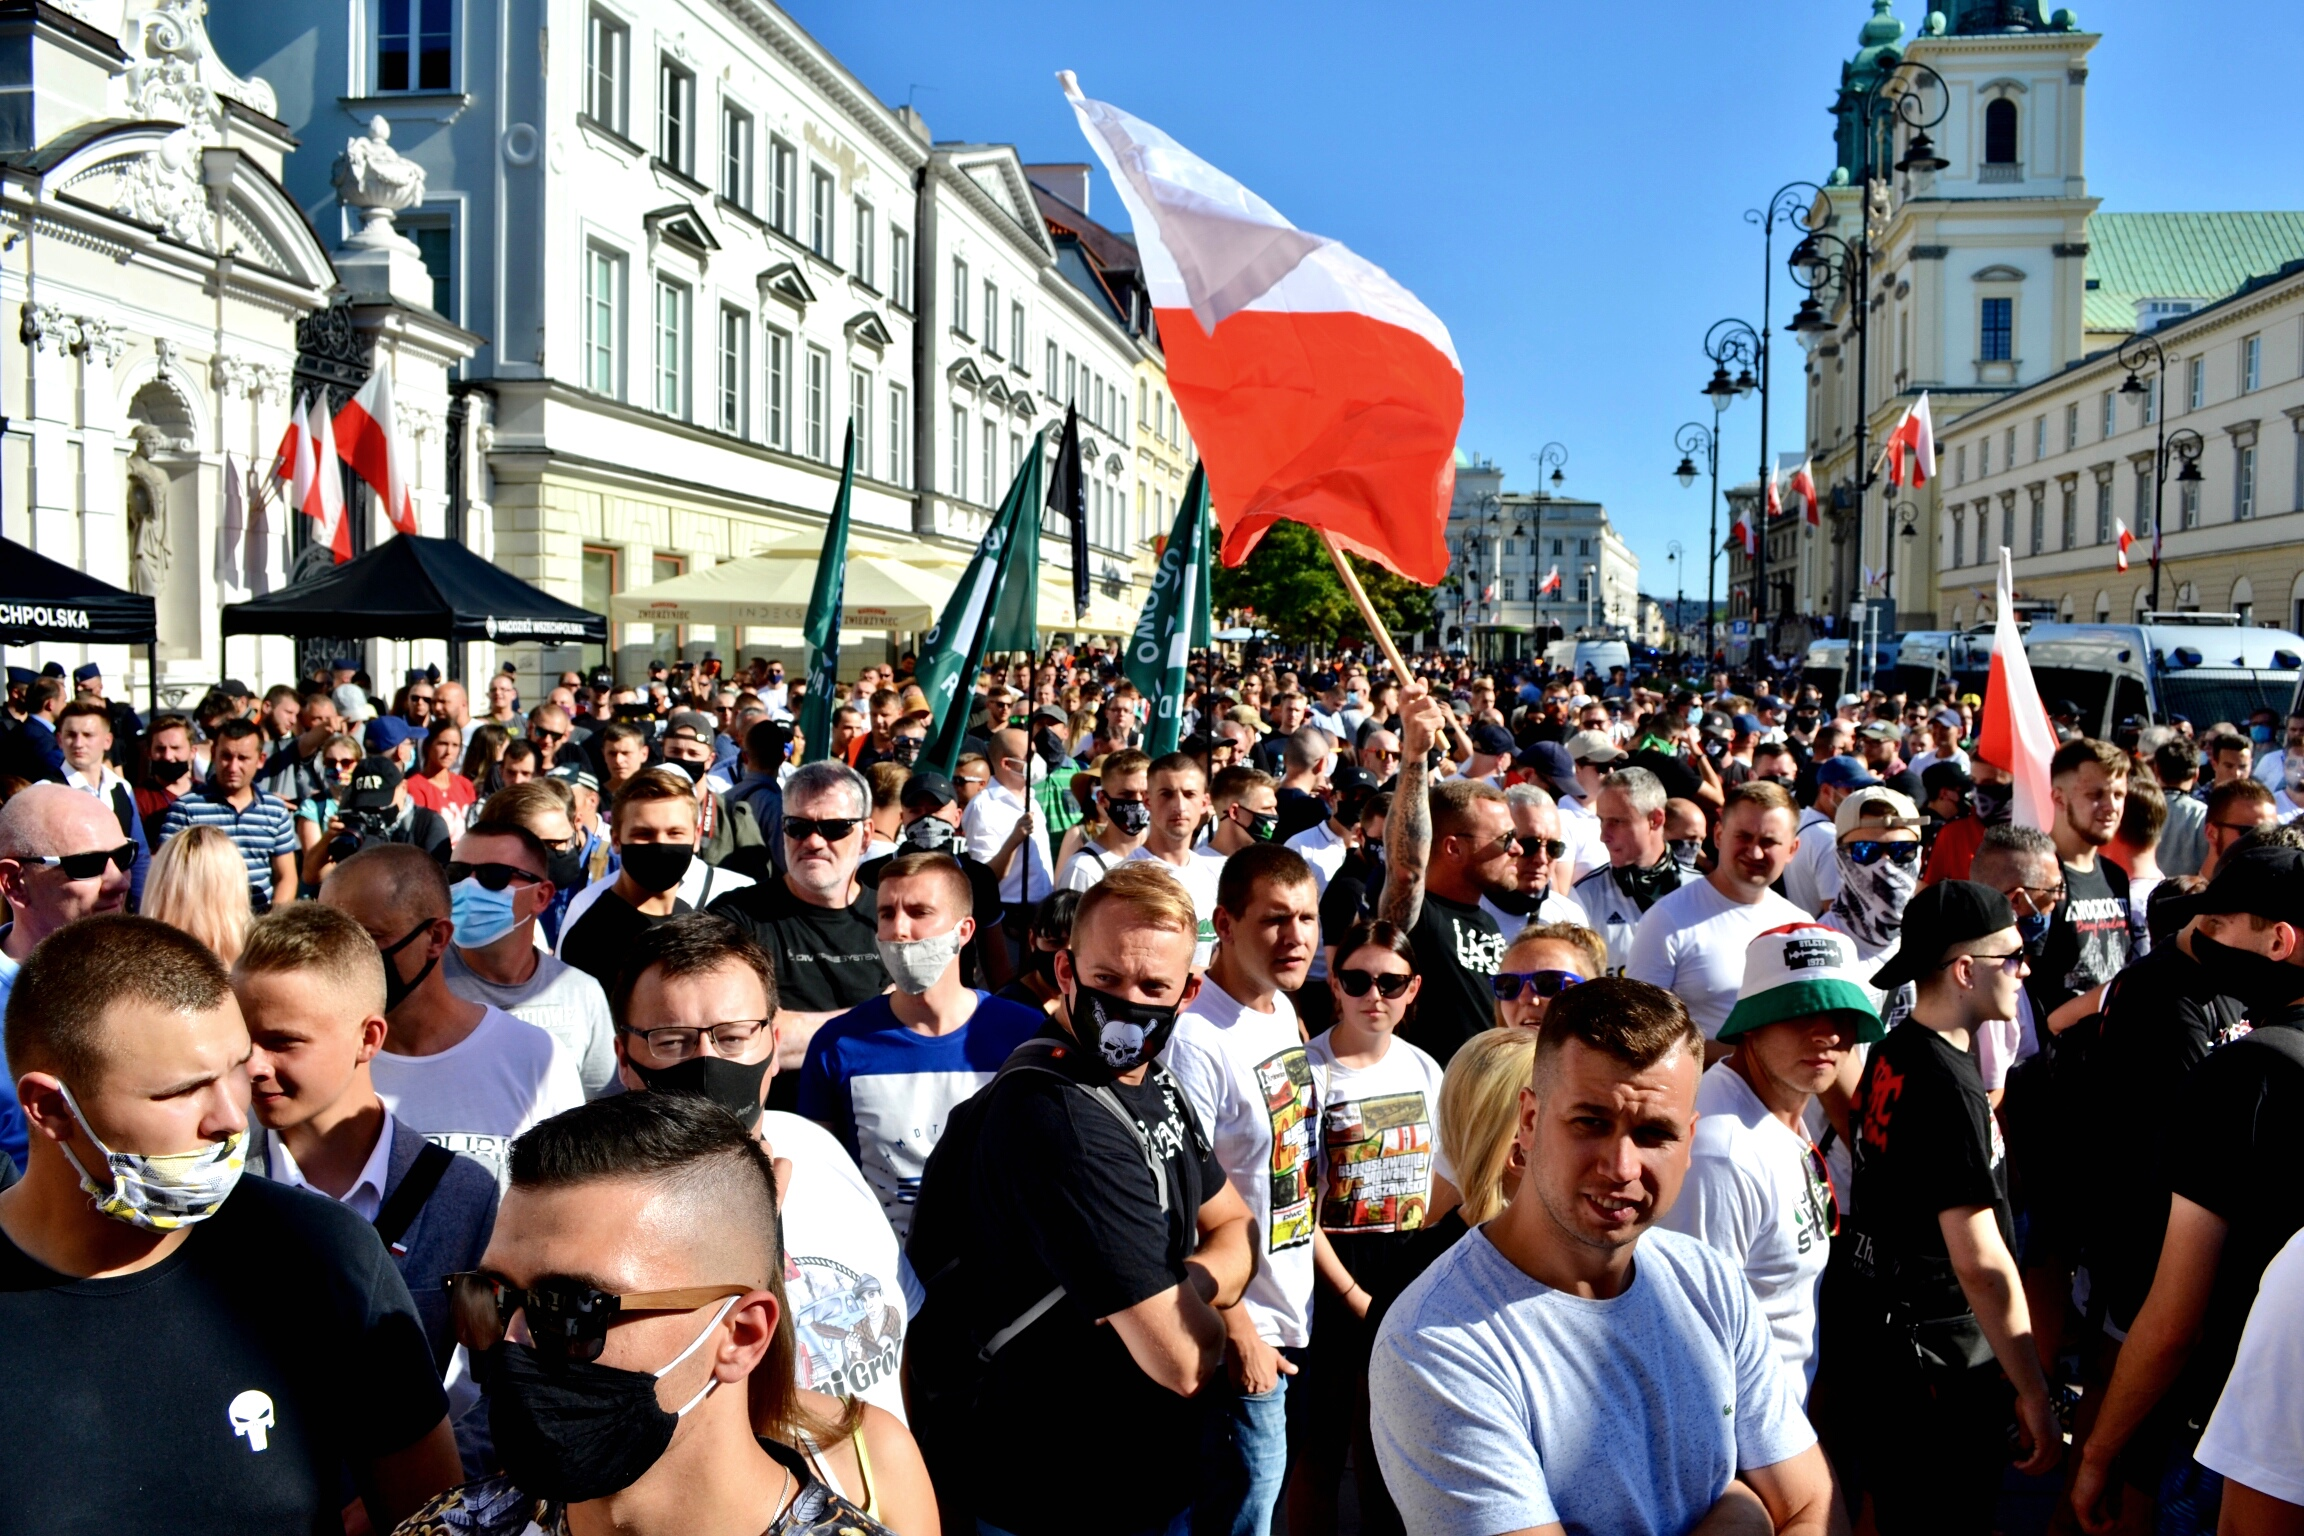 Hundreds of far-right activists gathered outside the University of Warsaw.